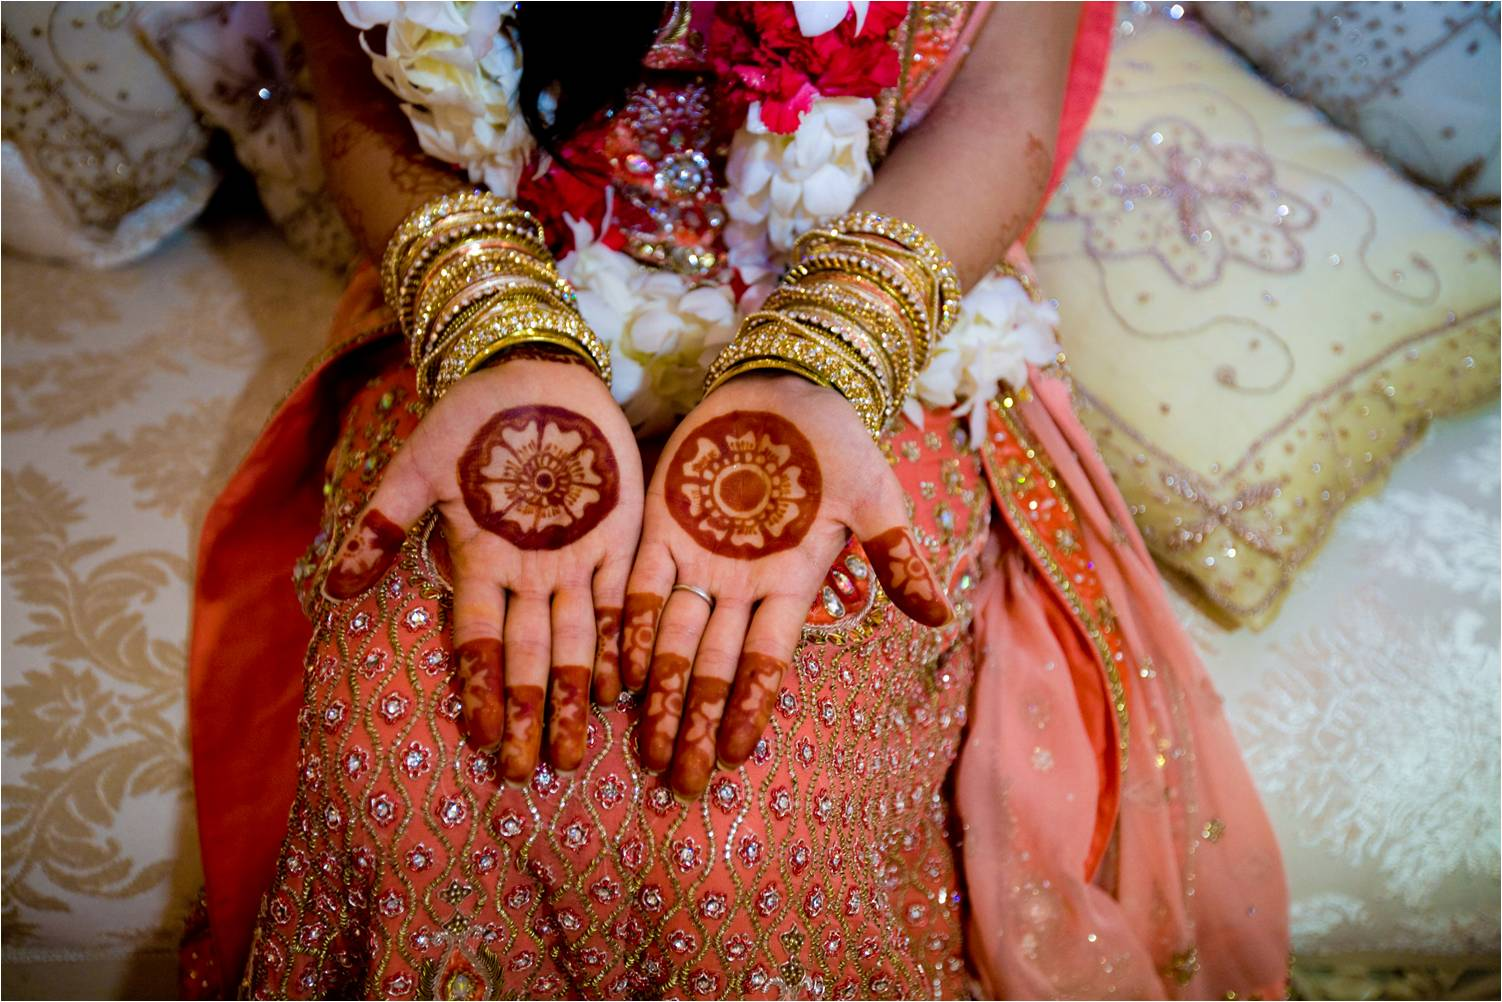 Bridal Mehndi Nyc : Stunning indian bride shows off wedding day henna on hands